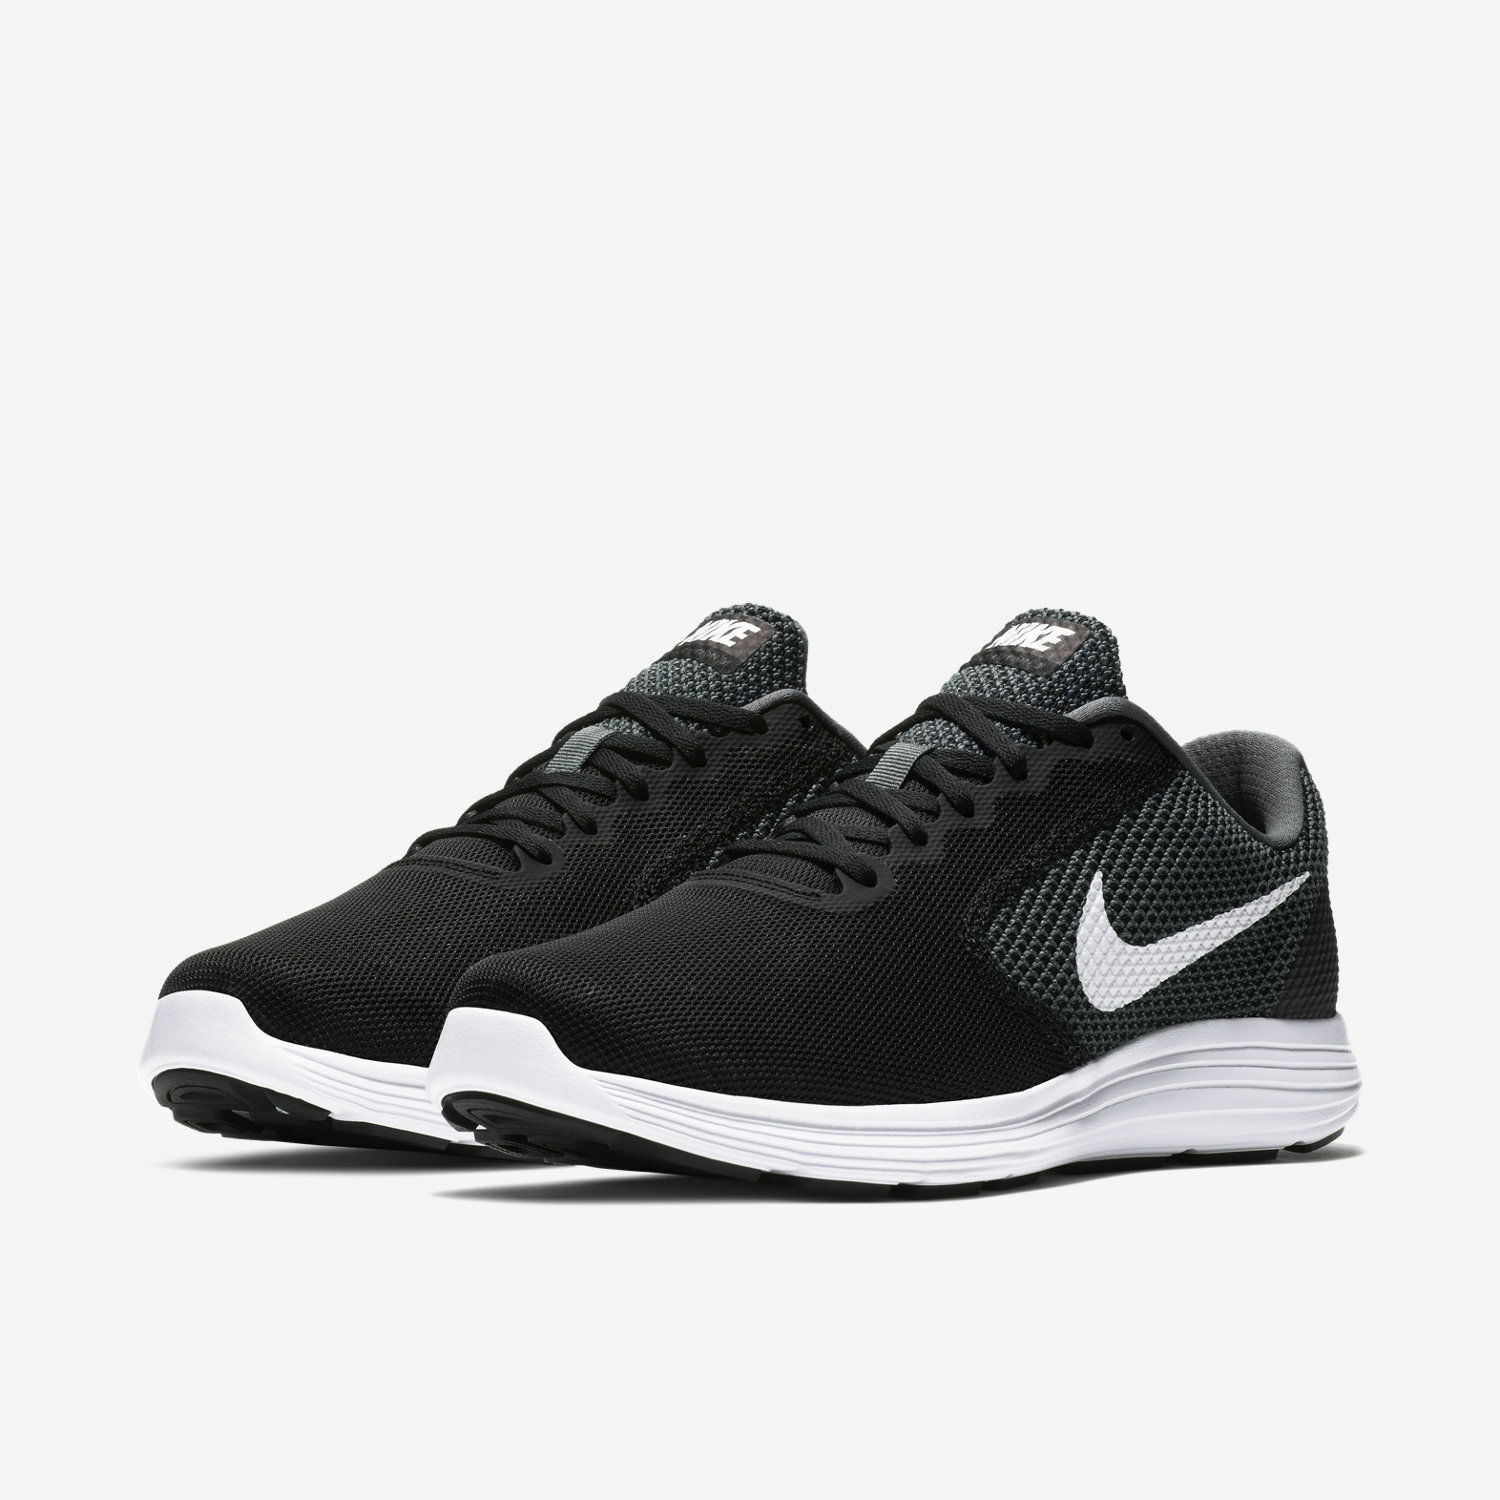 Nike Nike Nike revolution 3 (wide 4e) men running training shoe dark Grau schwarz 819301001 6e09a3